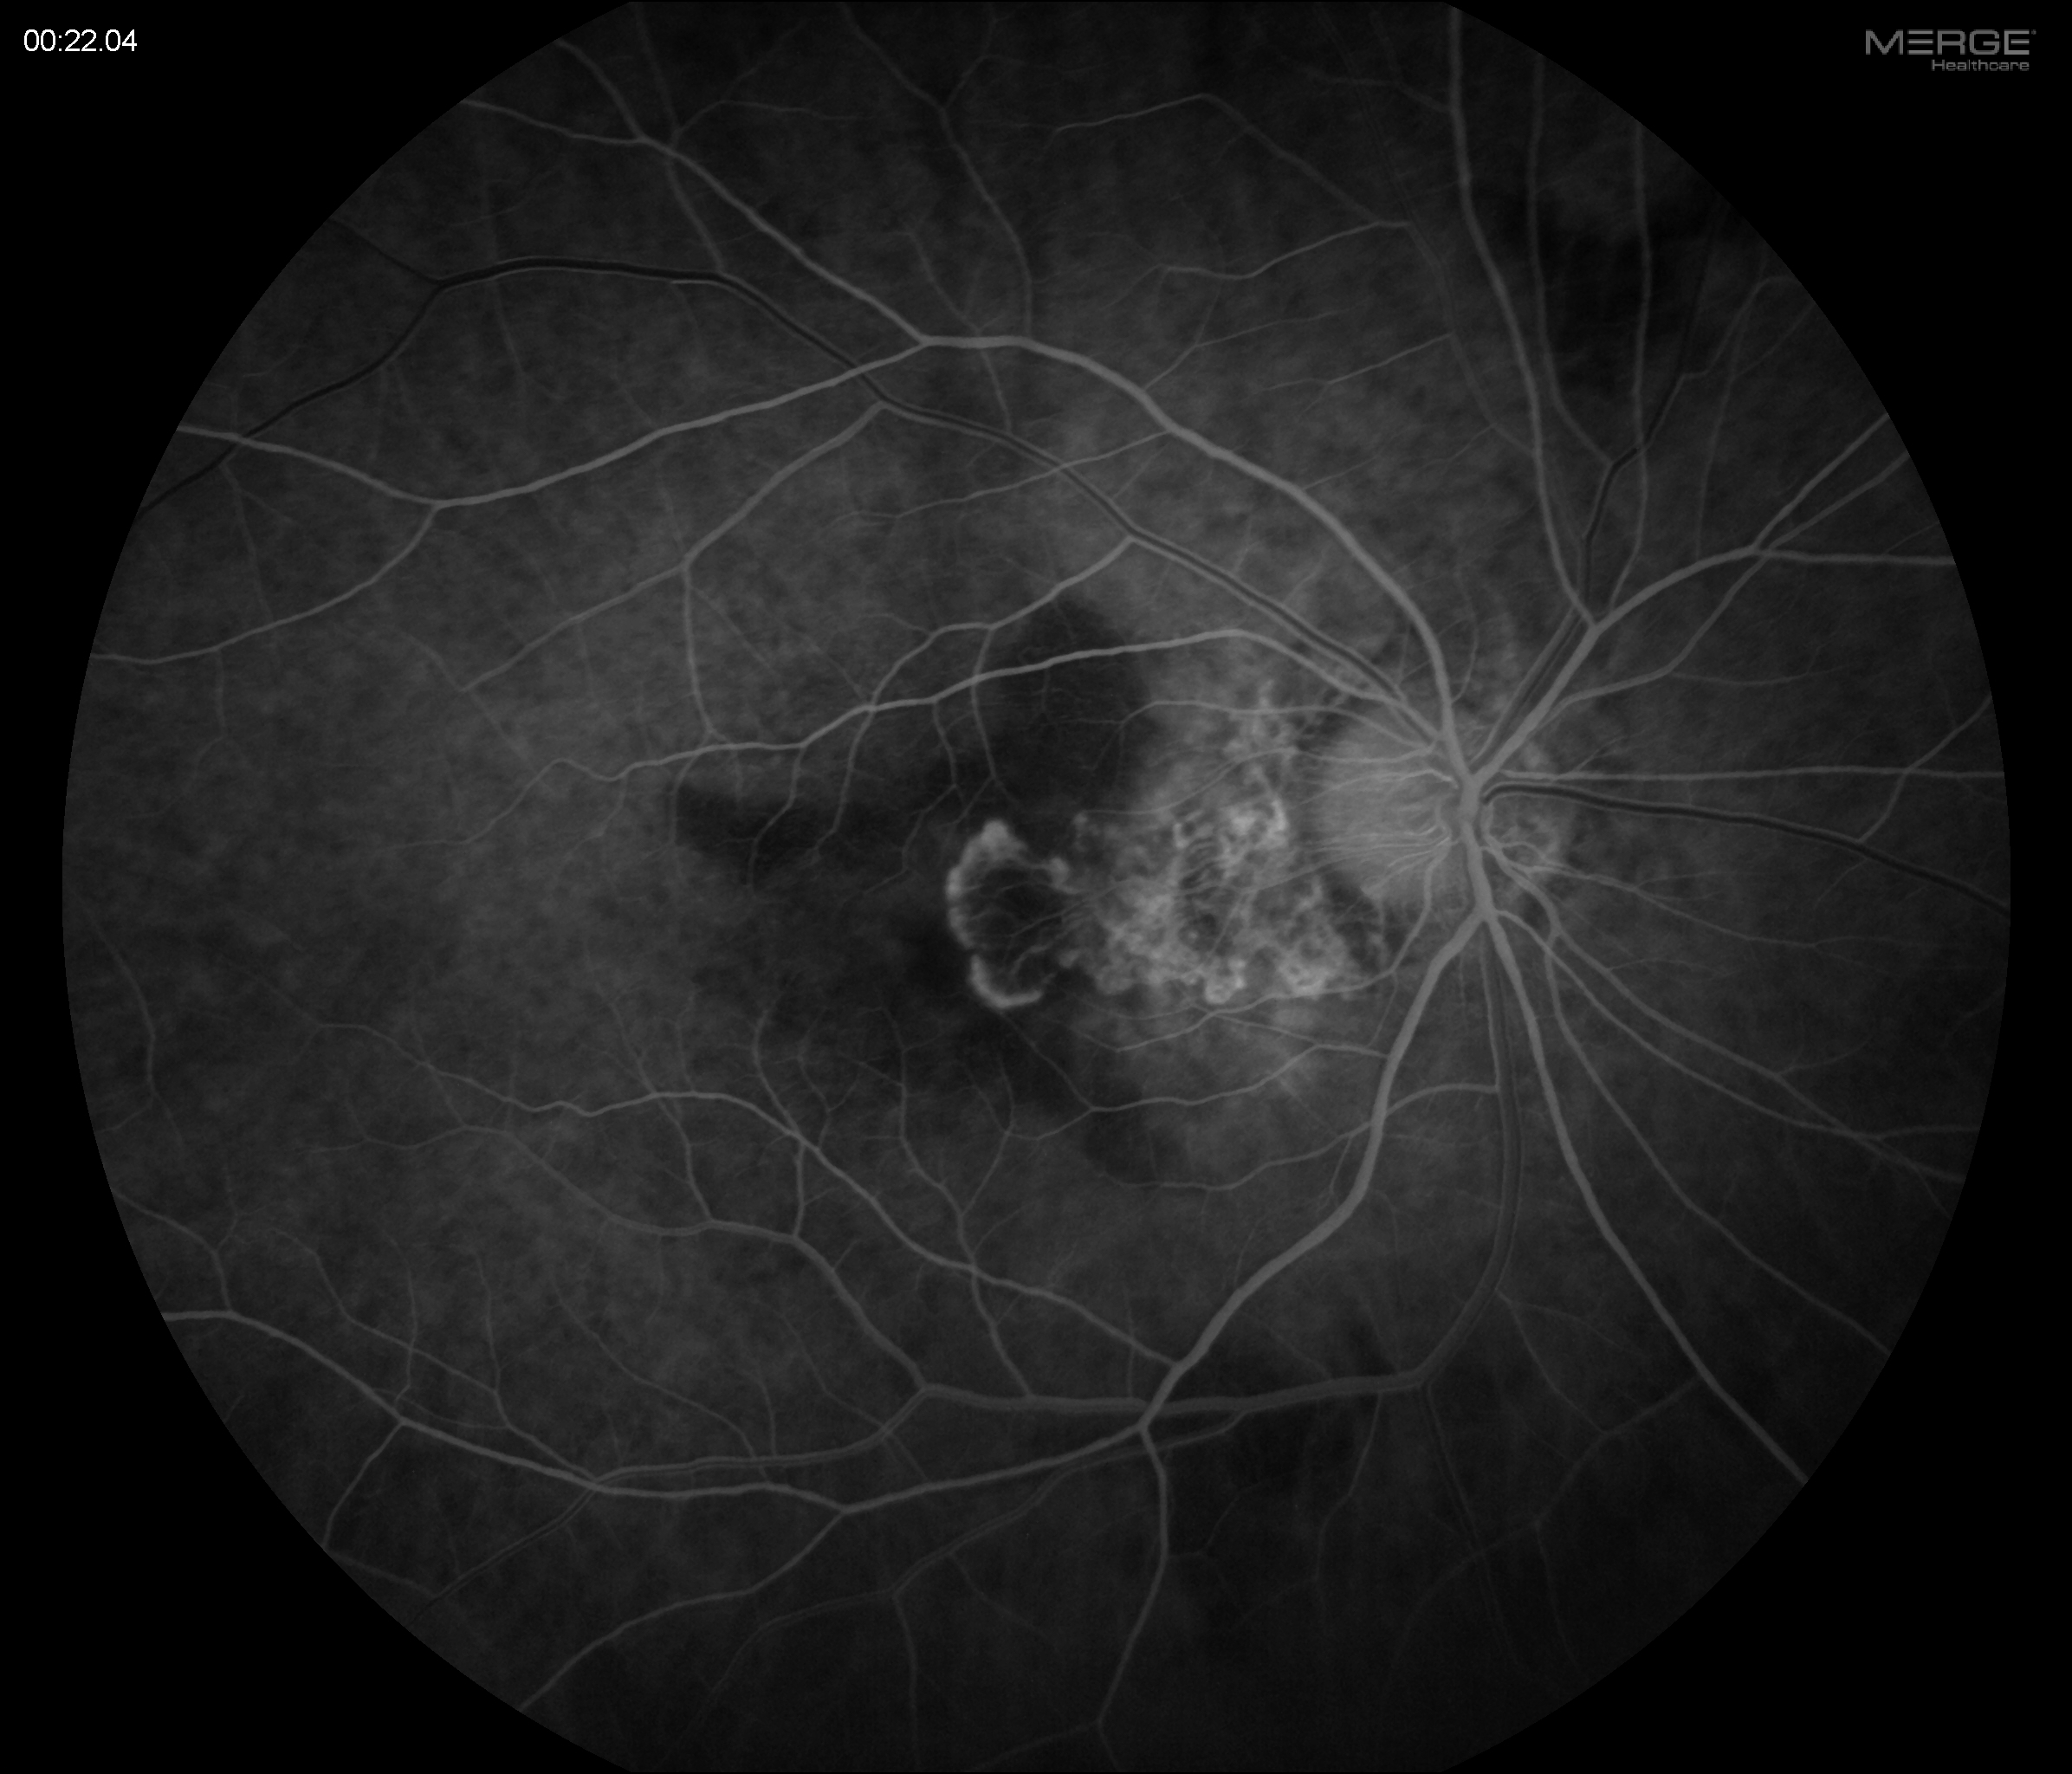 Wet AMD Fluorescein Angiography